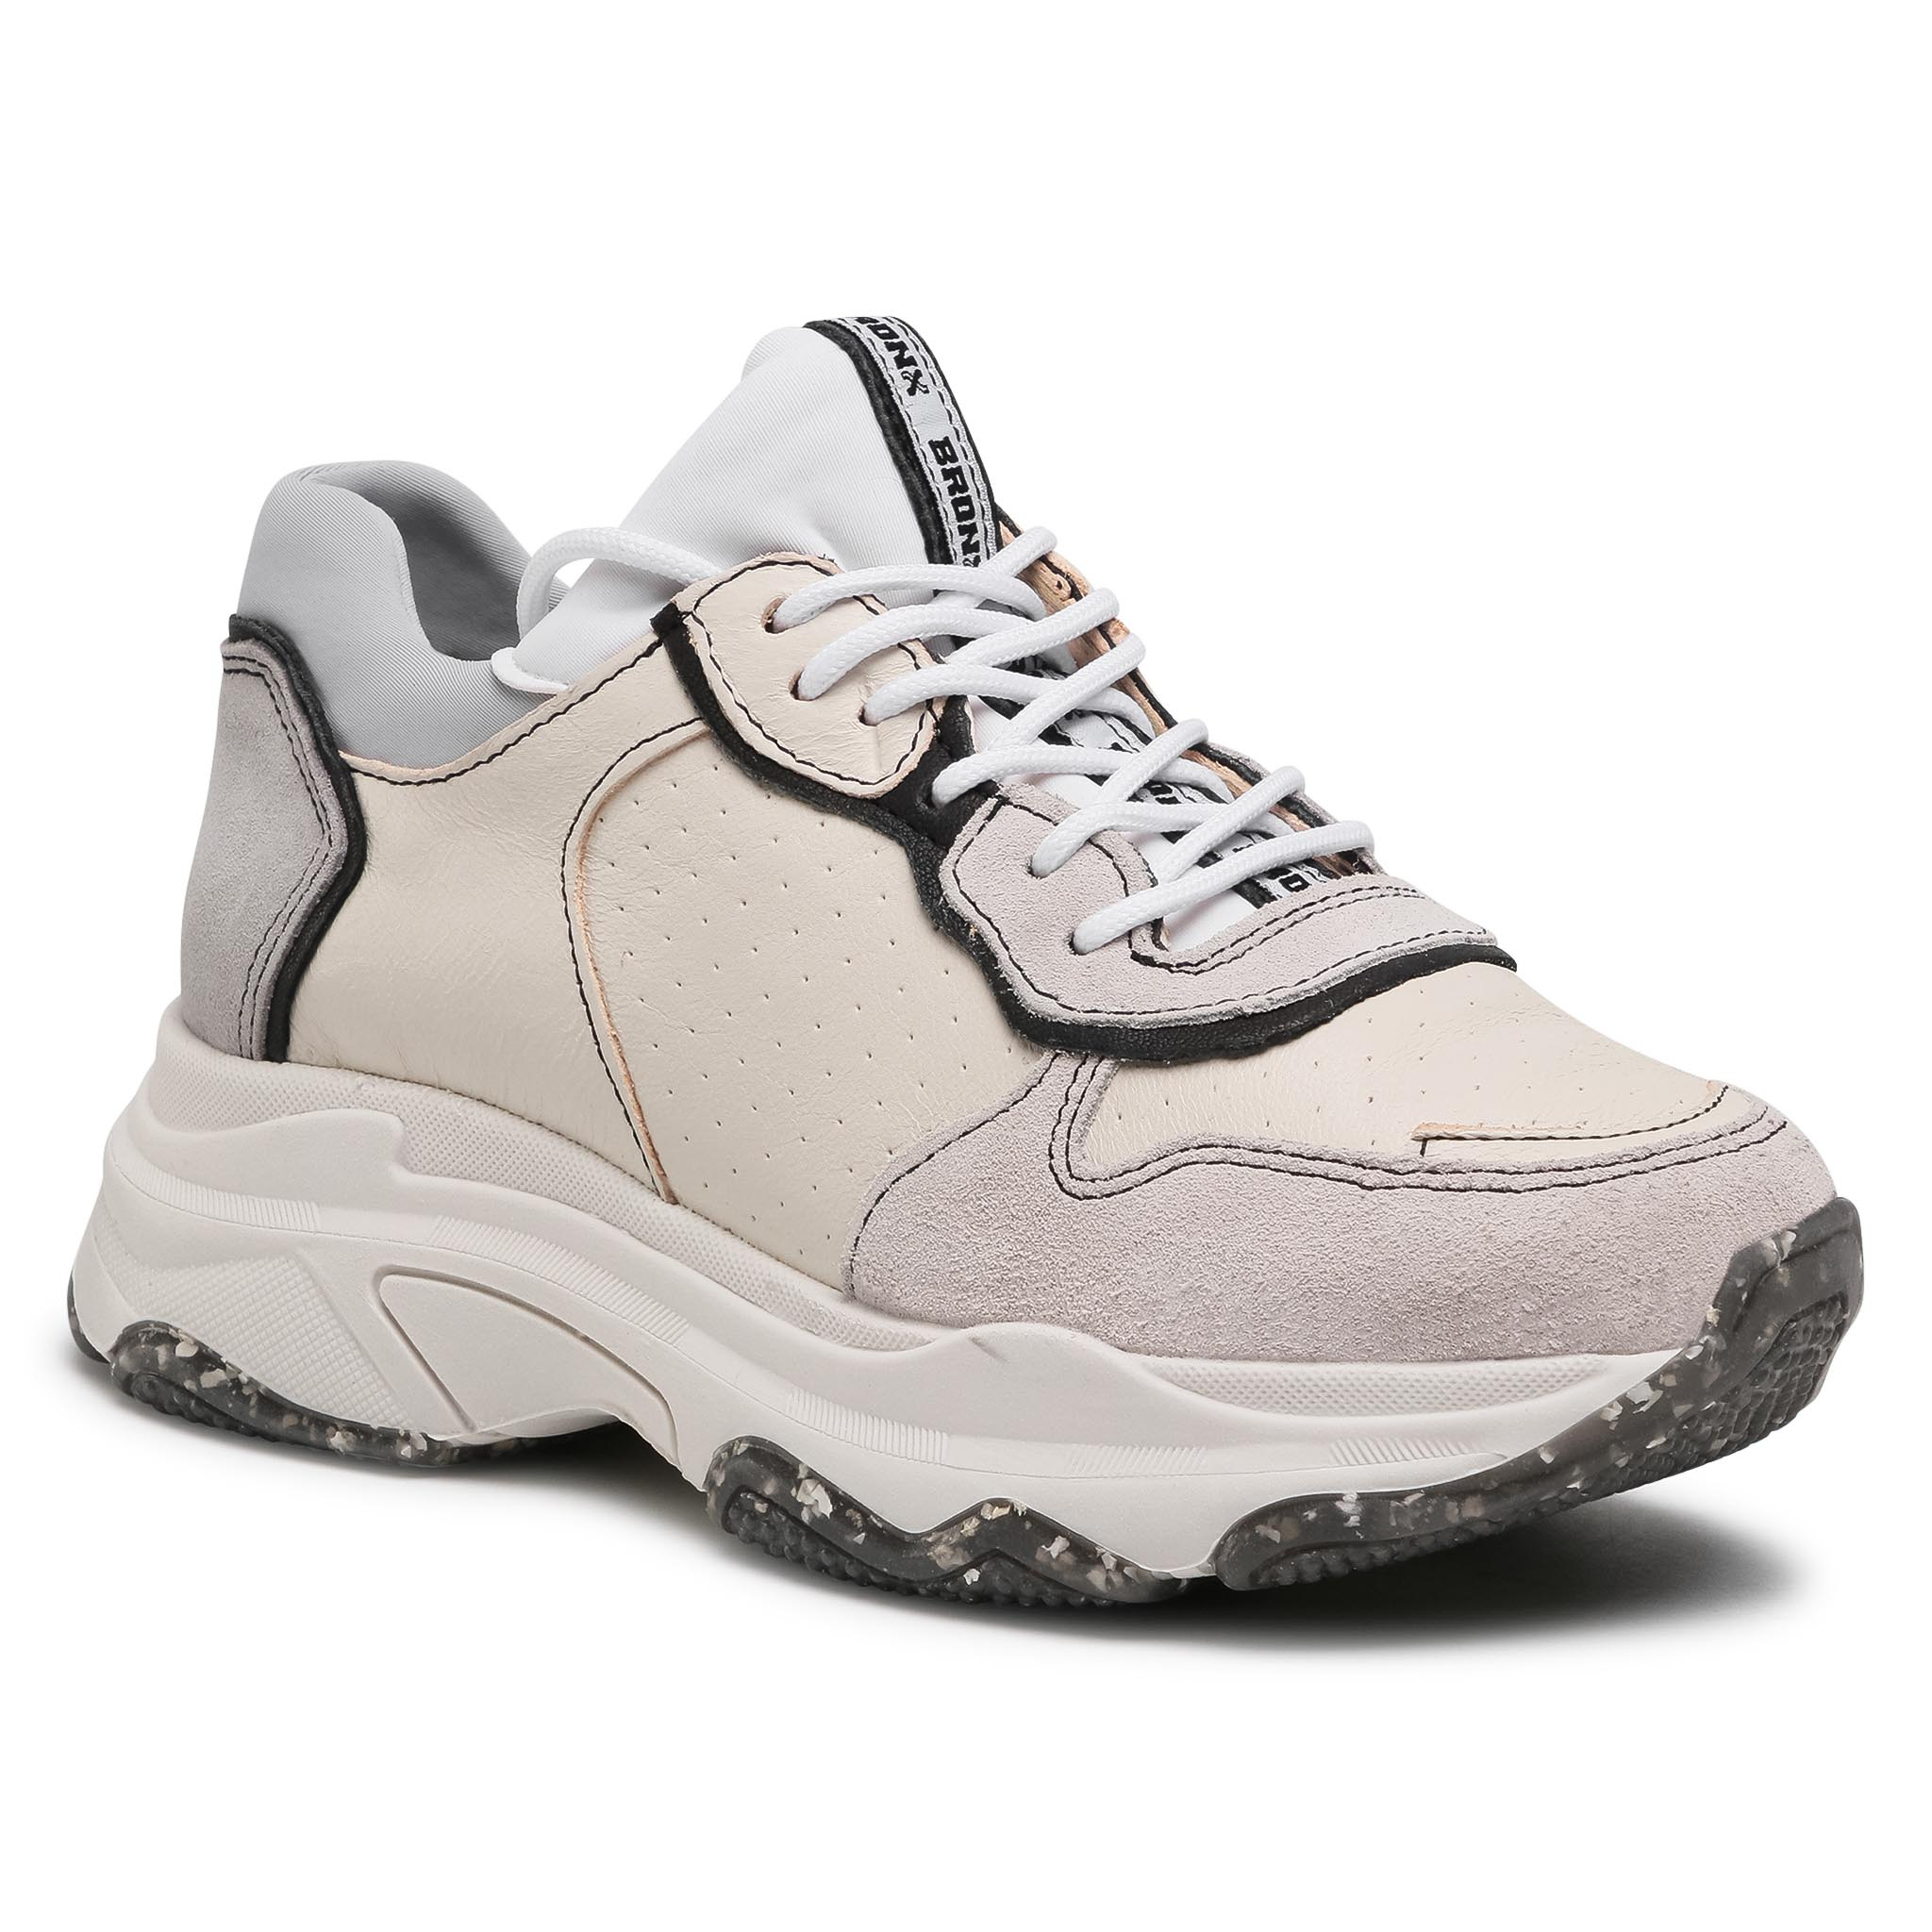 Sneakers BRONX - 66167C-As Off White/Black